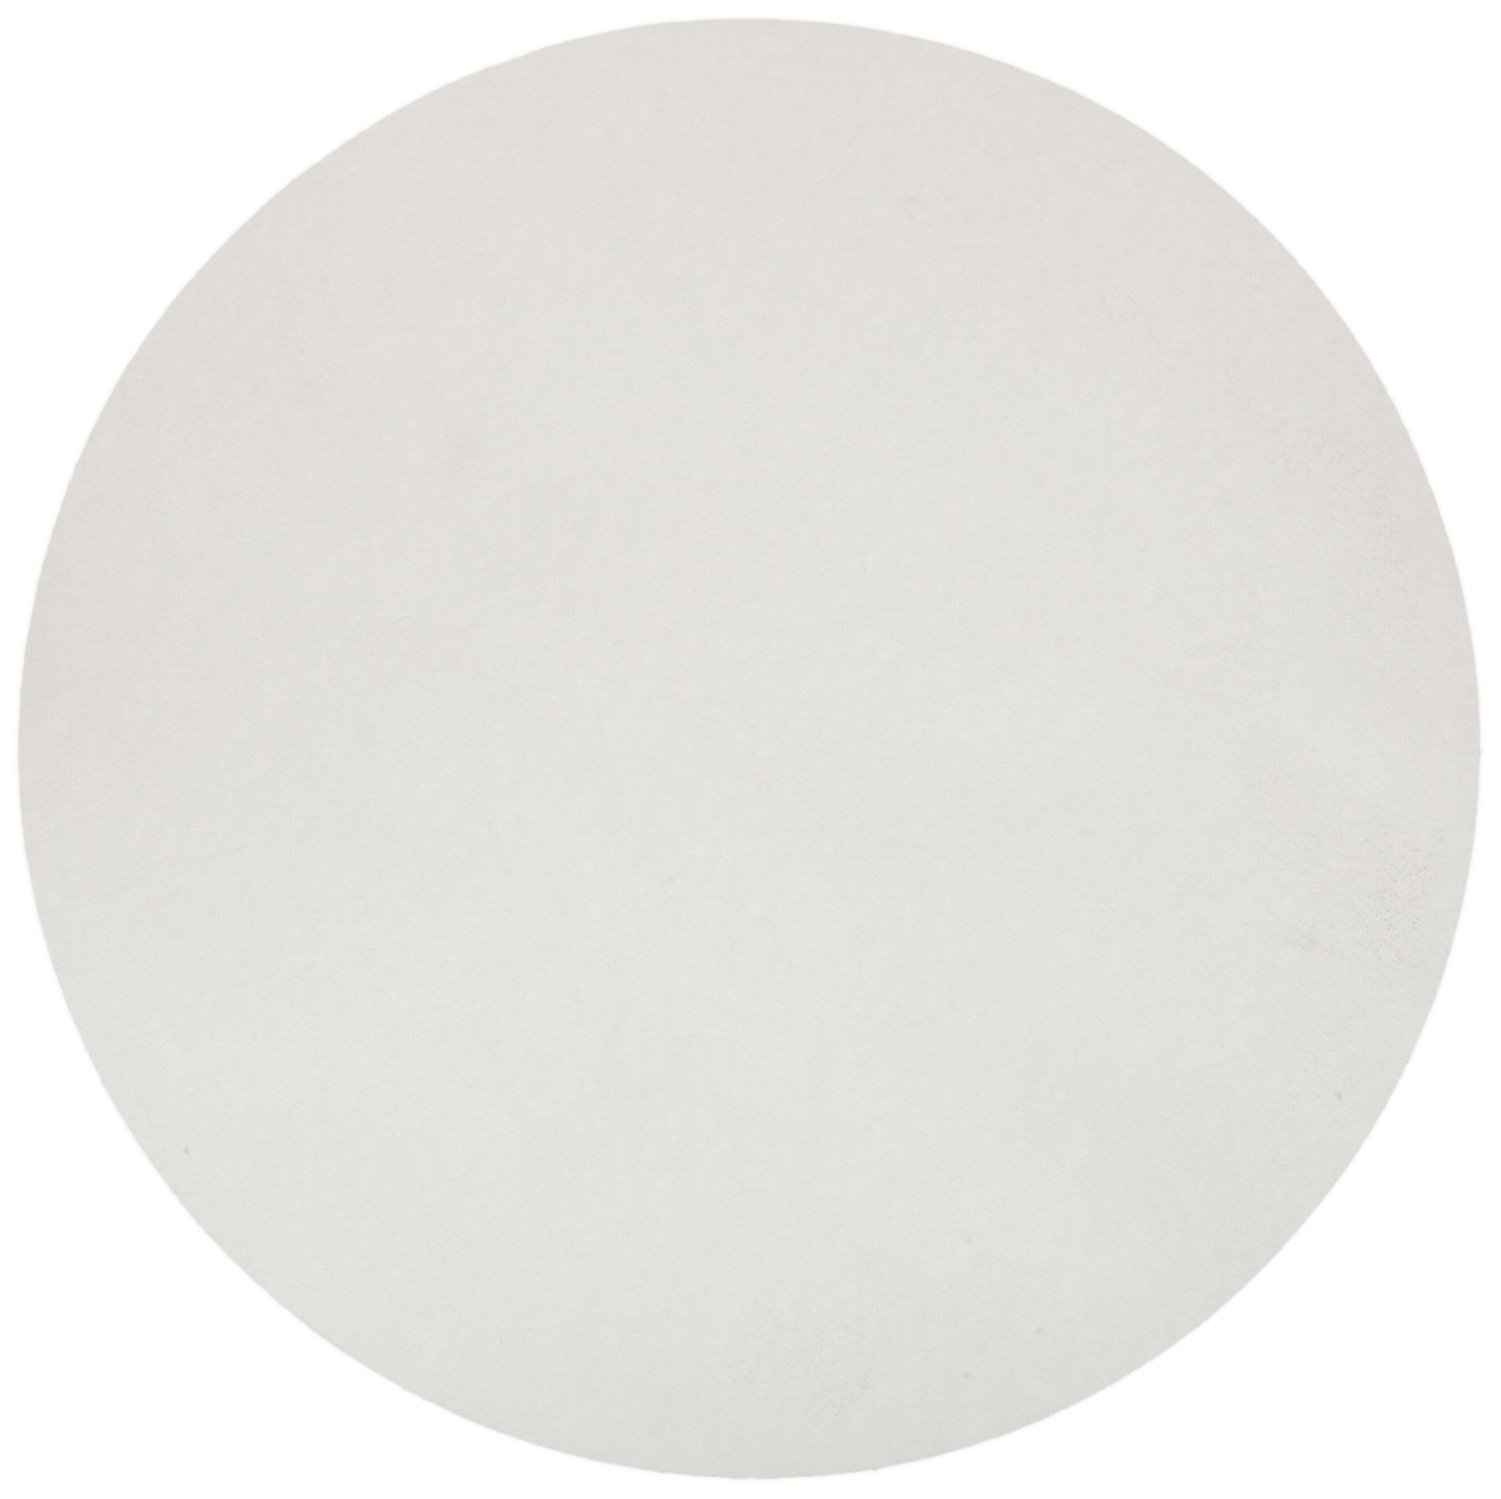 Ahlstrom 6100-0750 Qualitative Filter Paper, 7.5cm Diameter, 1.5 Micron, Slow Flow, Grade 610 (Pack of 100) by Ahlstrom